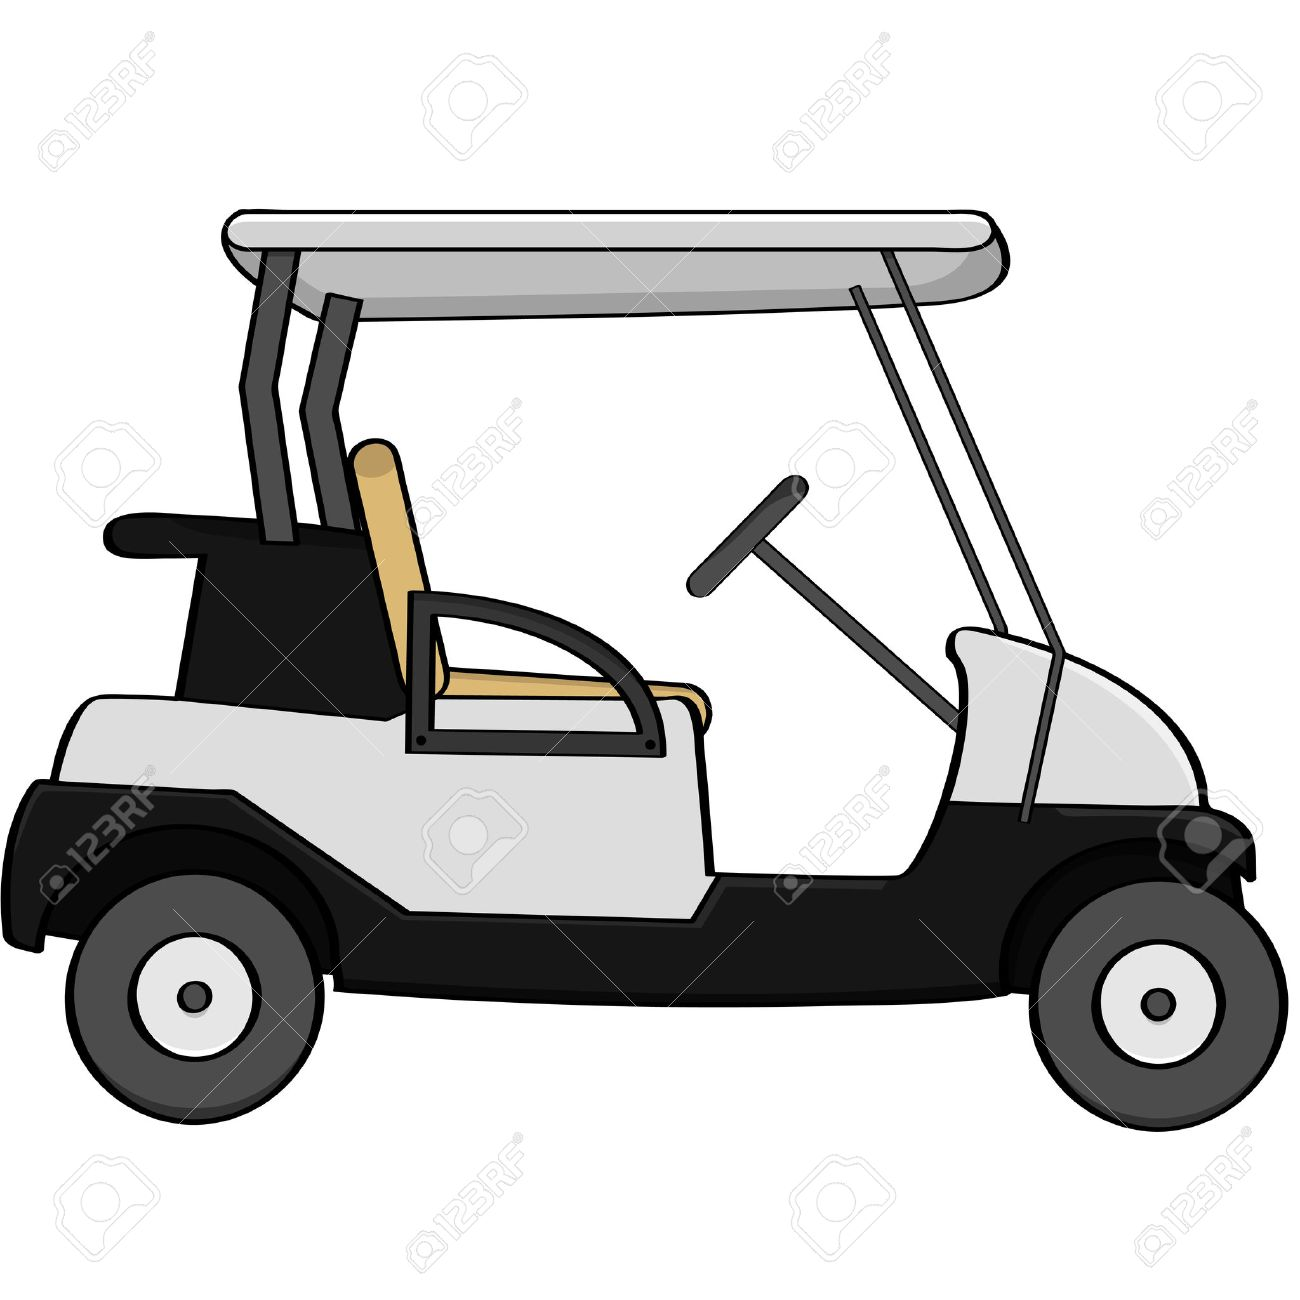 cartoon illustration of an empty golf cart royalty free cliparts rh 123rf com golf cart clipart images golf cart clipart images